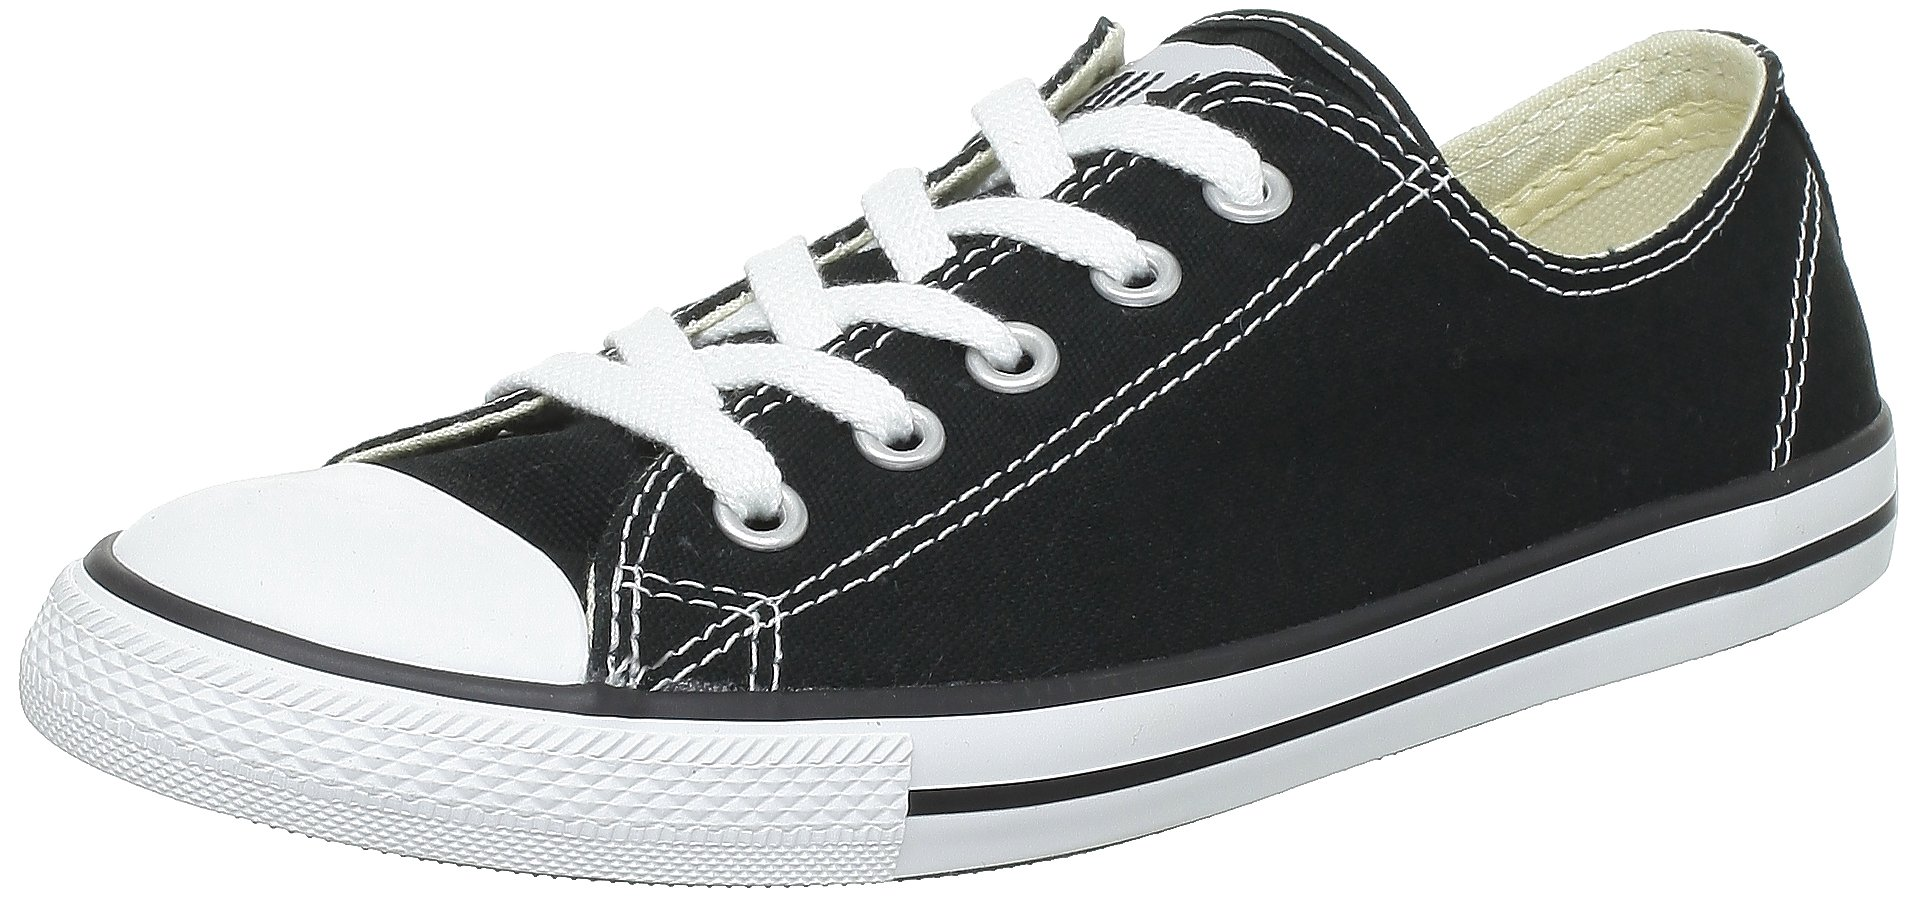 Converse Women's Chuck Taylor All Star Dainty, CT AS DAINTY OX BLACK/WHITE, 8 US